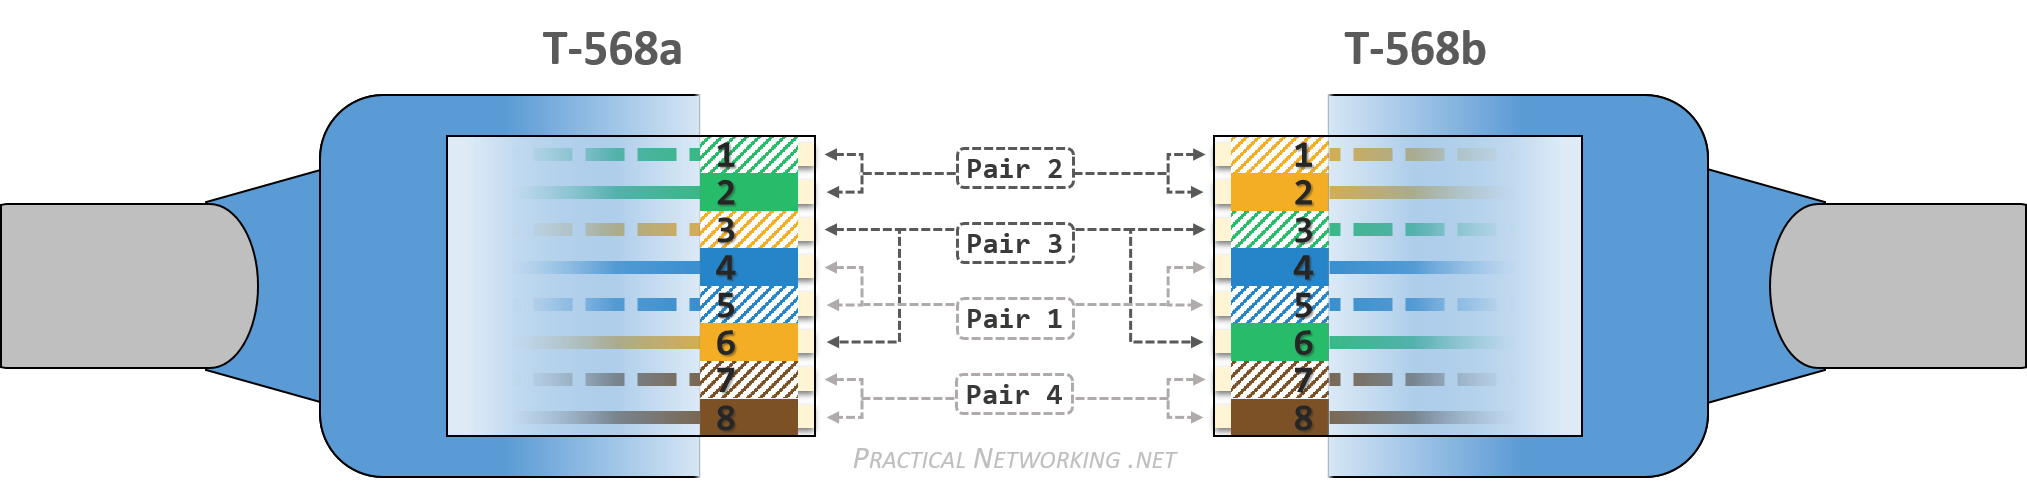 ethernet wiring practical networking net rh practicalnetworking net ethernet wiring diagram rj45 ethernet wiring standards